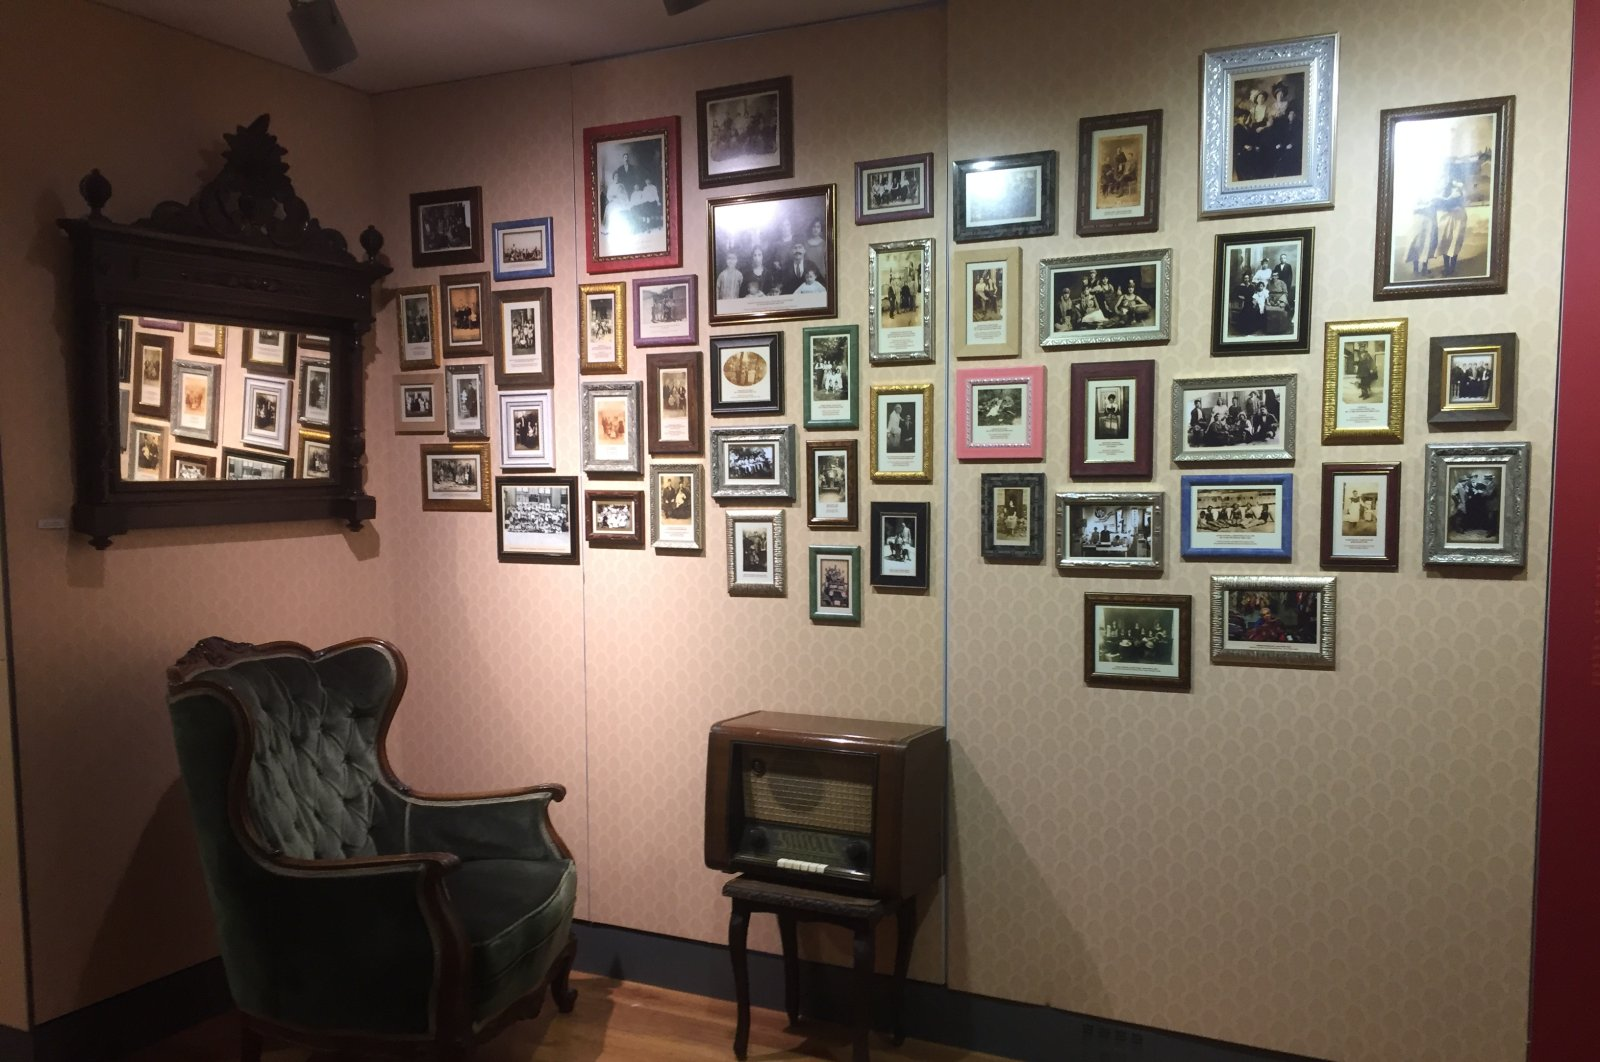 This recreated home parlor features family photographs of Turkey's Jews through the decades, at the Jewish museum in Istanbul, Turkey. (Photo by Paris Achen)